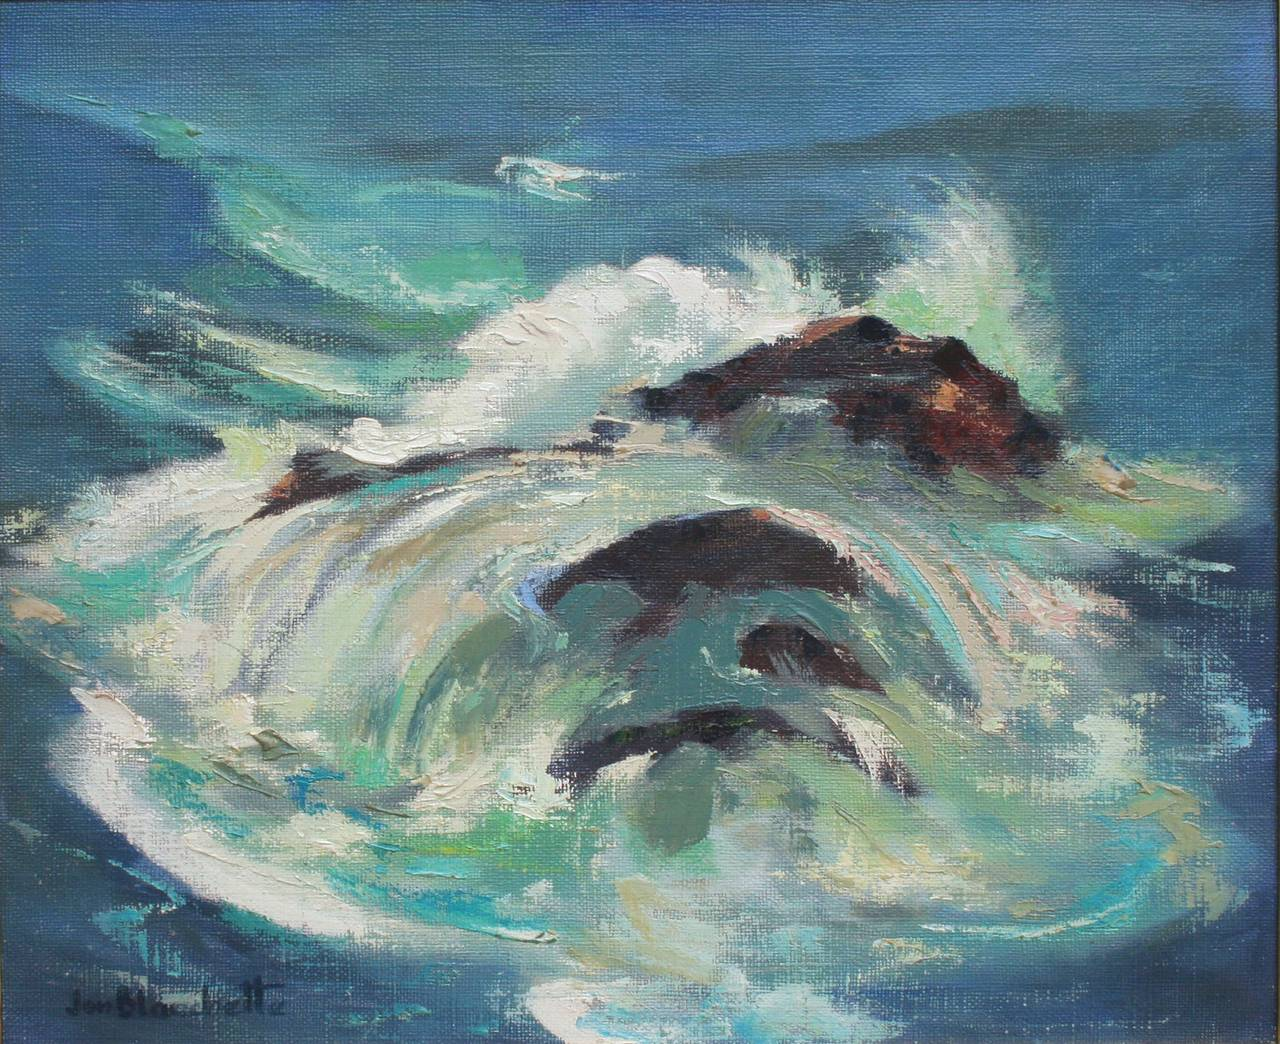 Ocean Wave Abstracted Seascape - Painting by Jon Blanchette